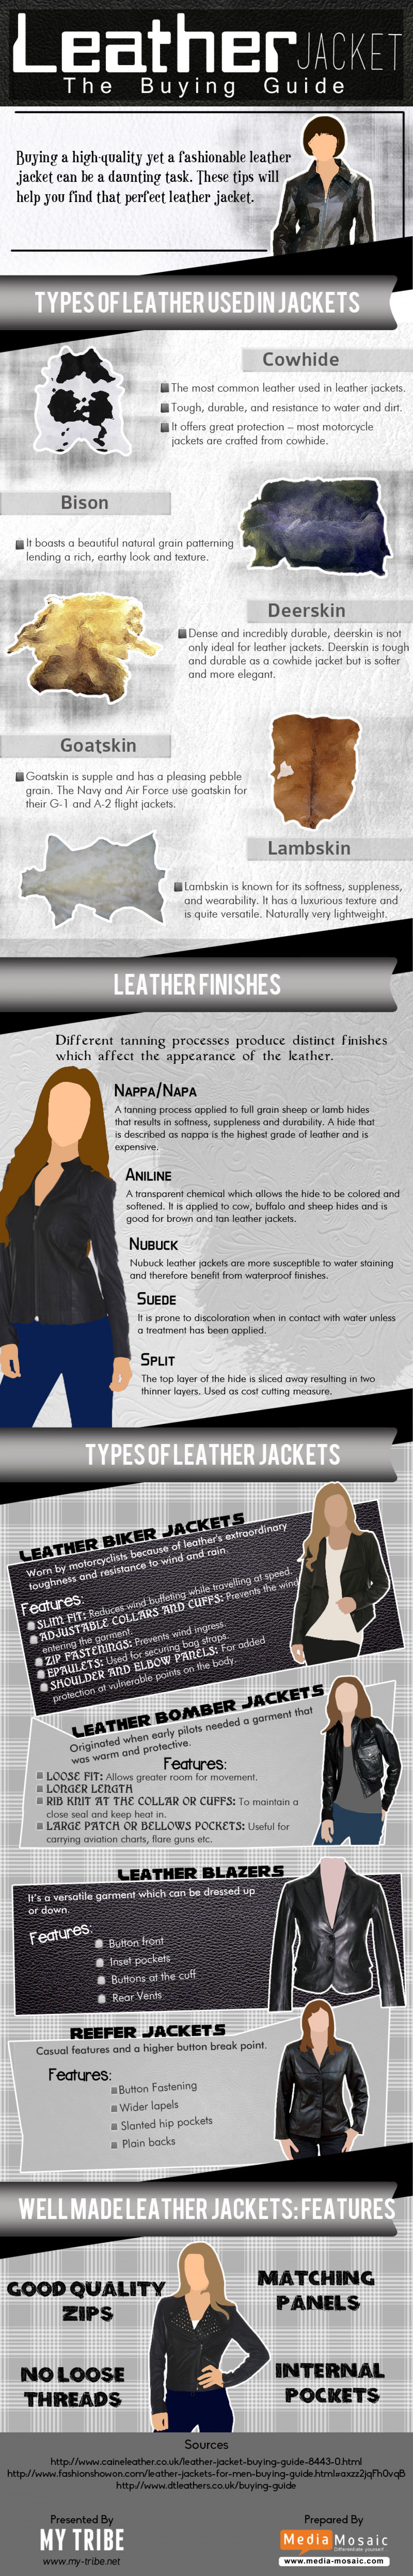 Leather Jacket: The Buying Guide Infographic